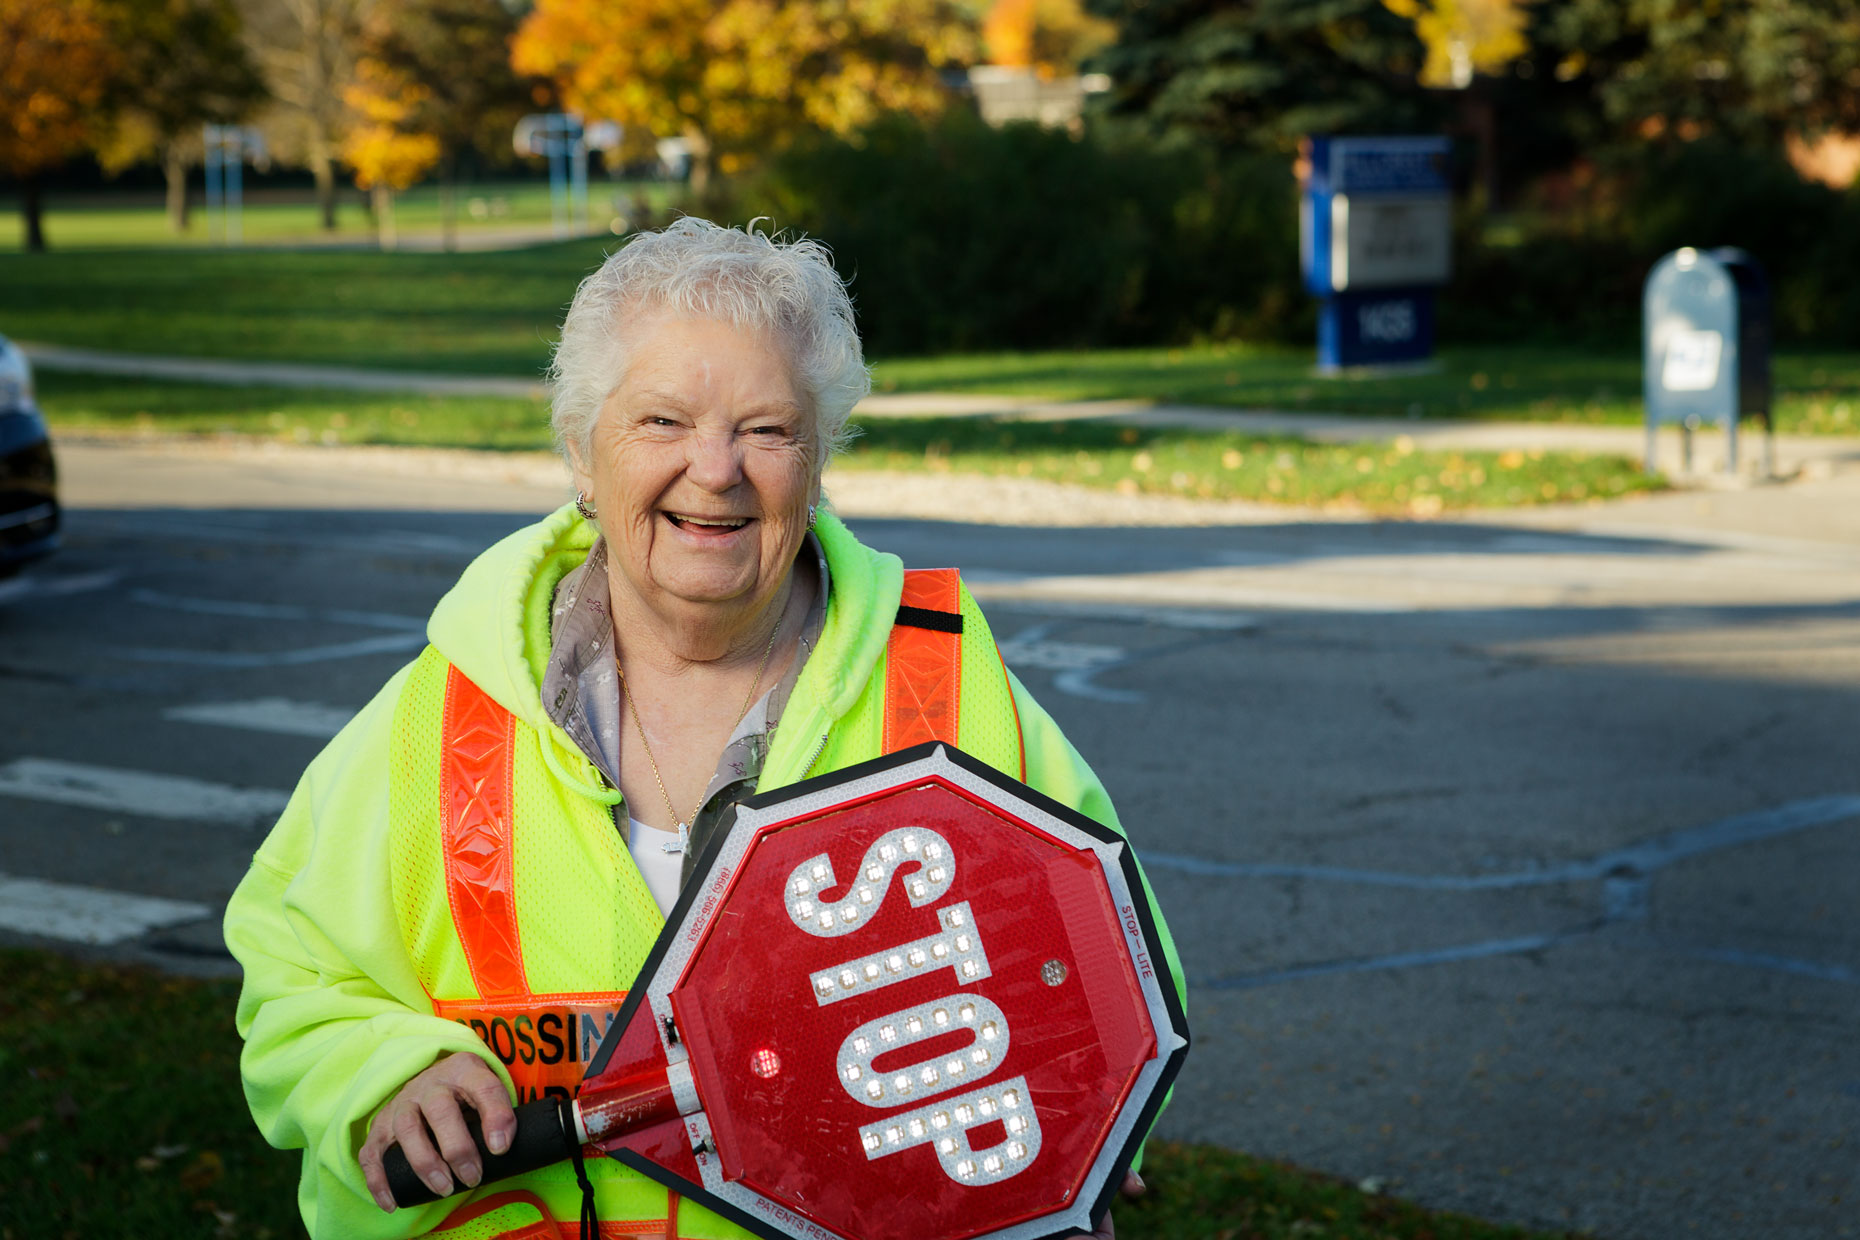 Crossing guard with stop sign standing outside in residential neighborhood.